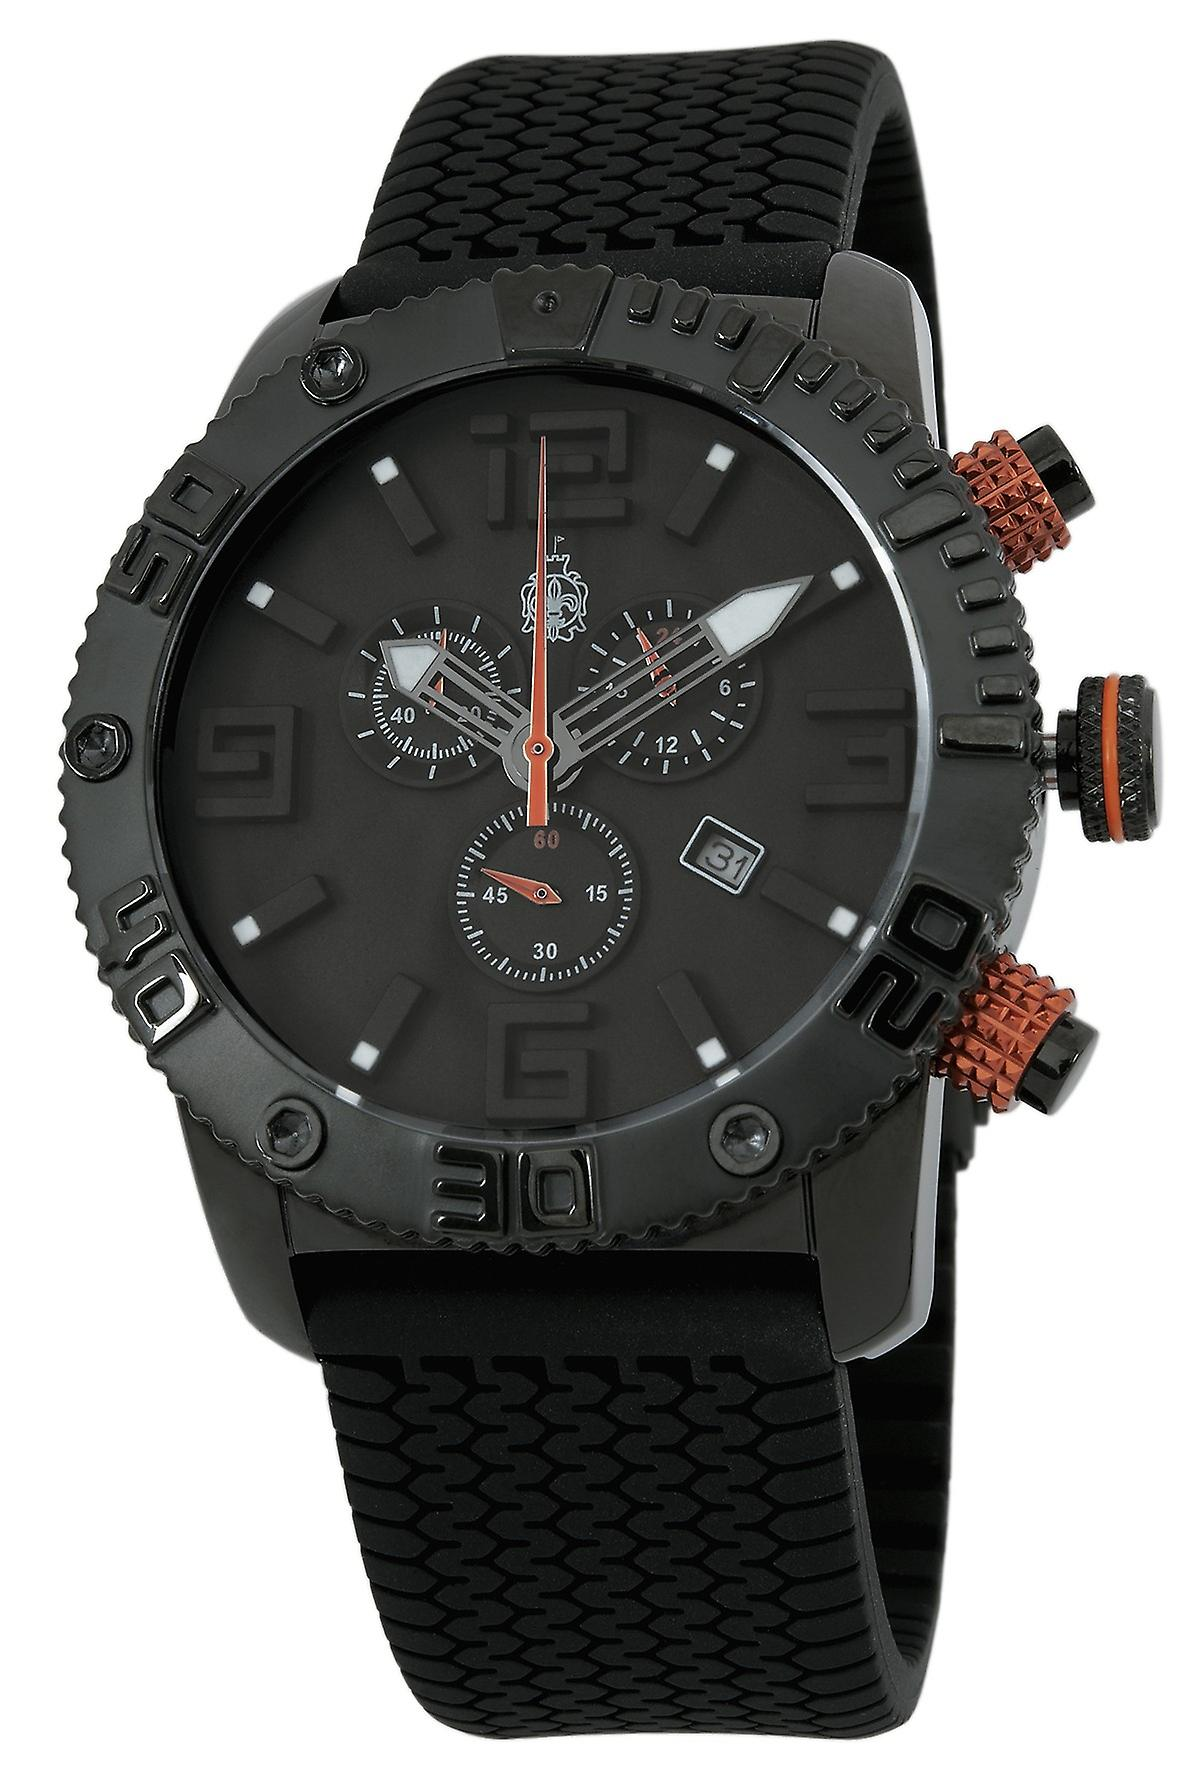 Burgmeister BLACK! Chrono Gents Chronograph BM521-622B